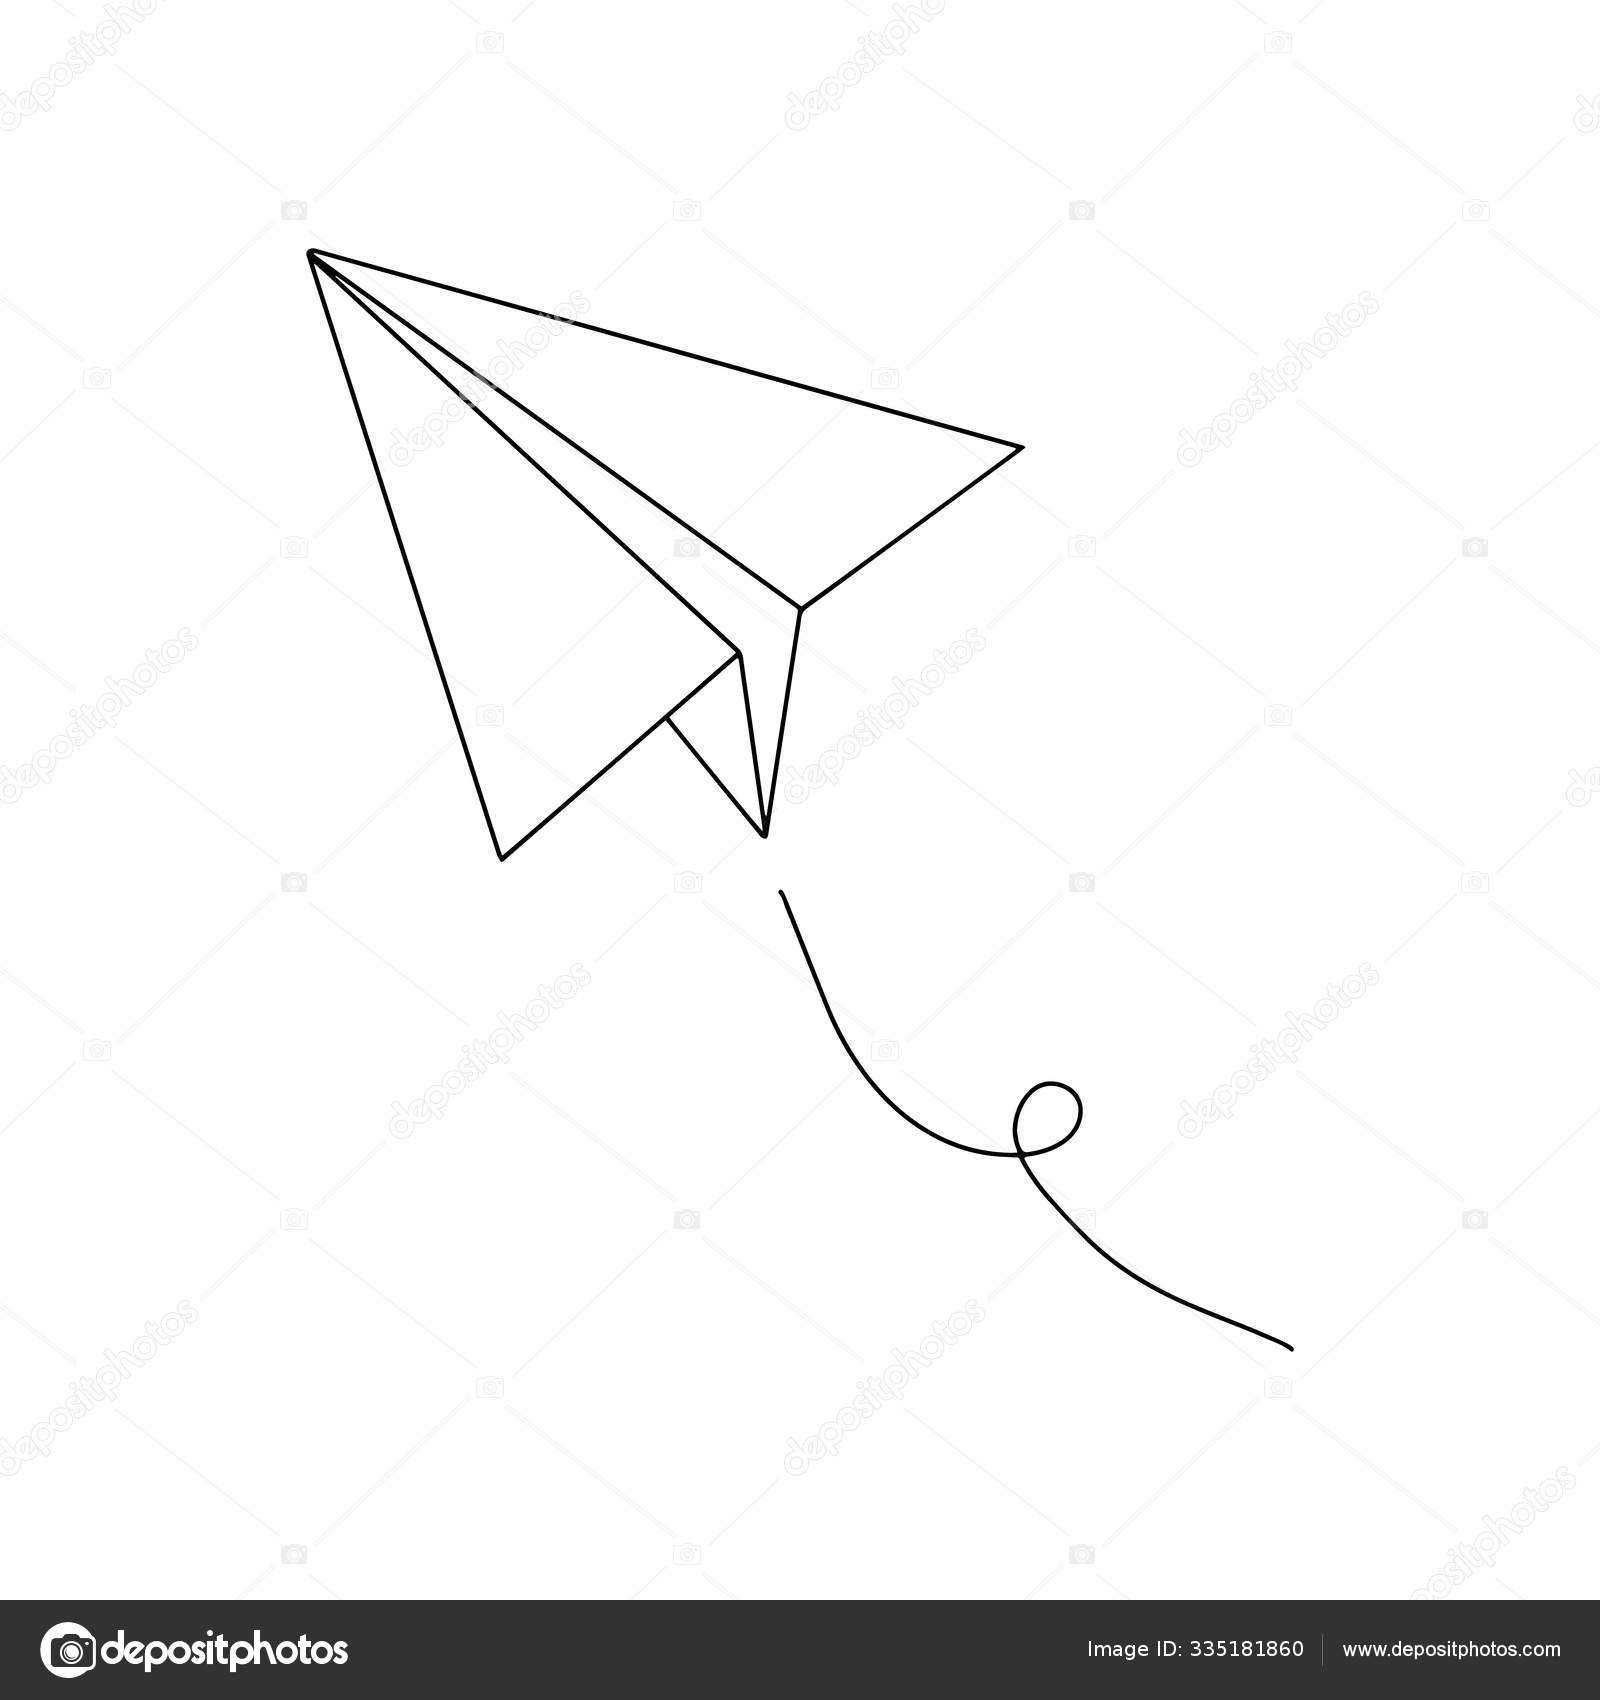 Sketch Illustration Simple Drawing Paper Airplane Handmade